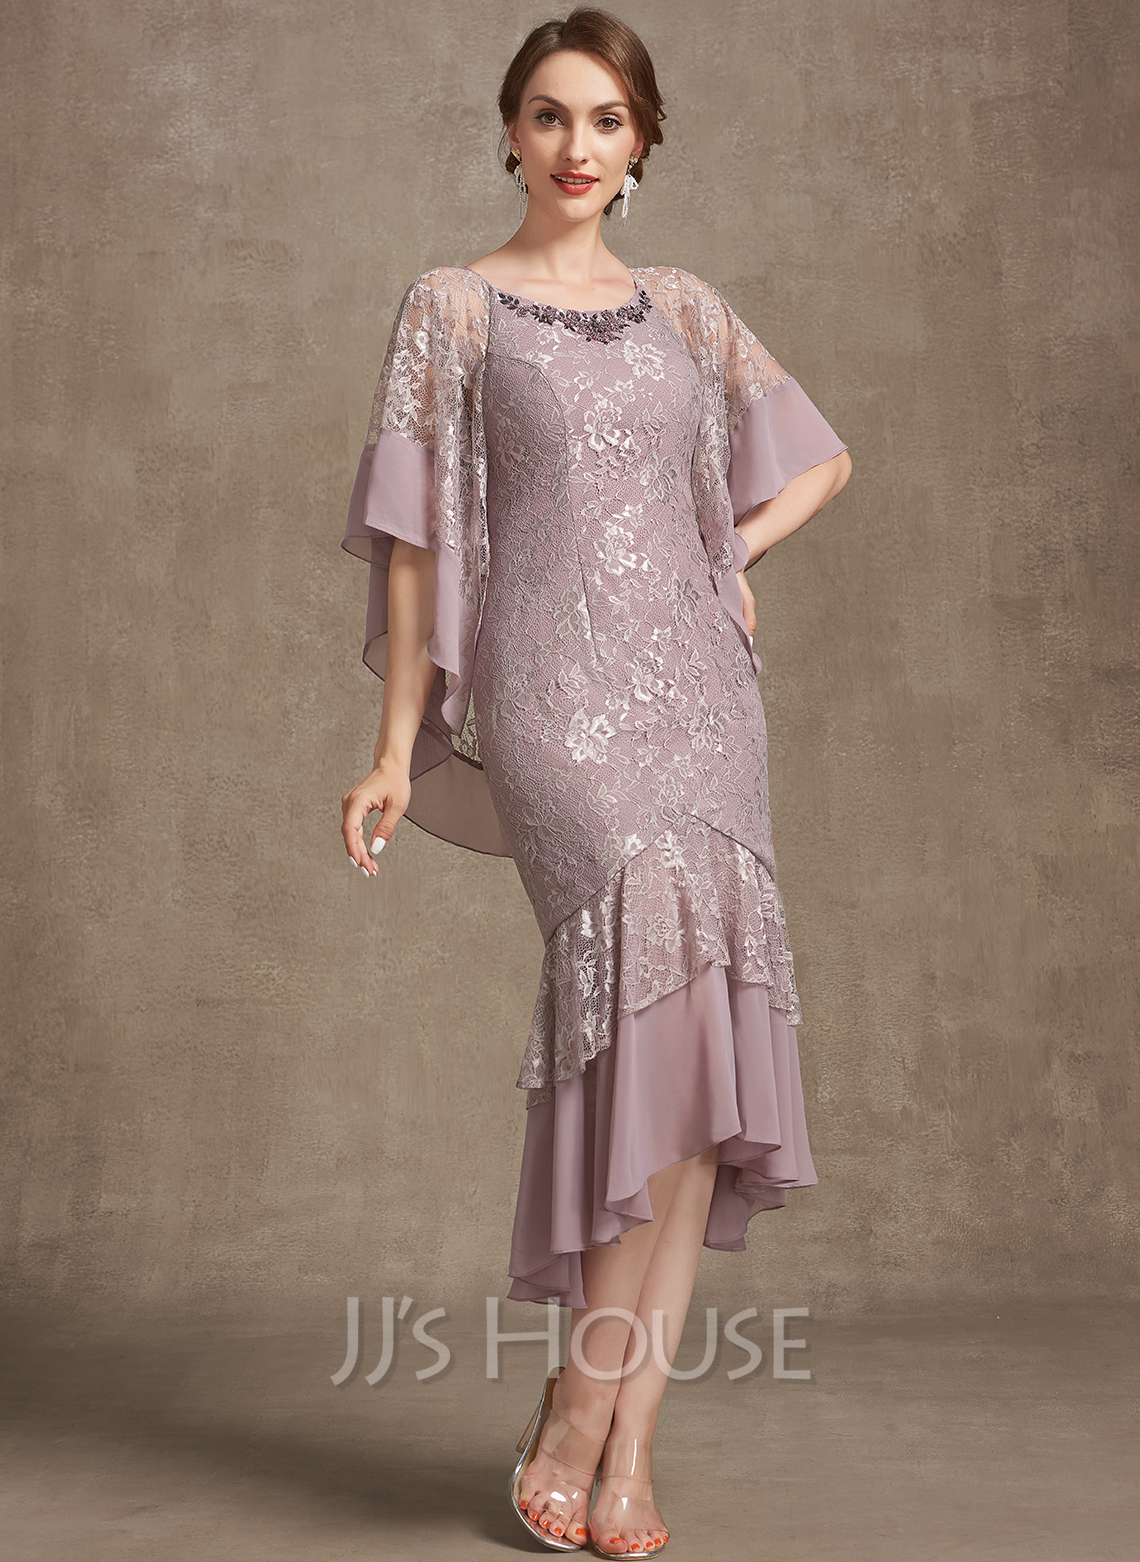 Trumpet/Mermaid Scoop Neck Asymmetrical Chiffon Lace Mother of the Bride Dress